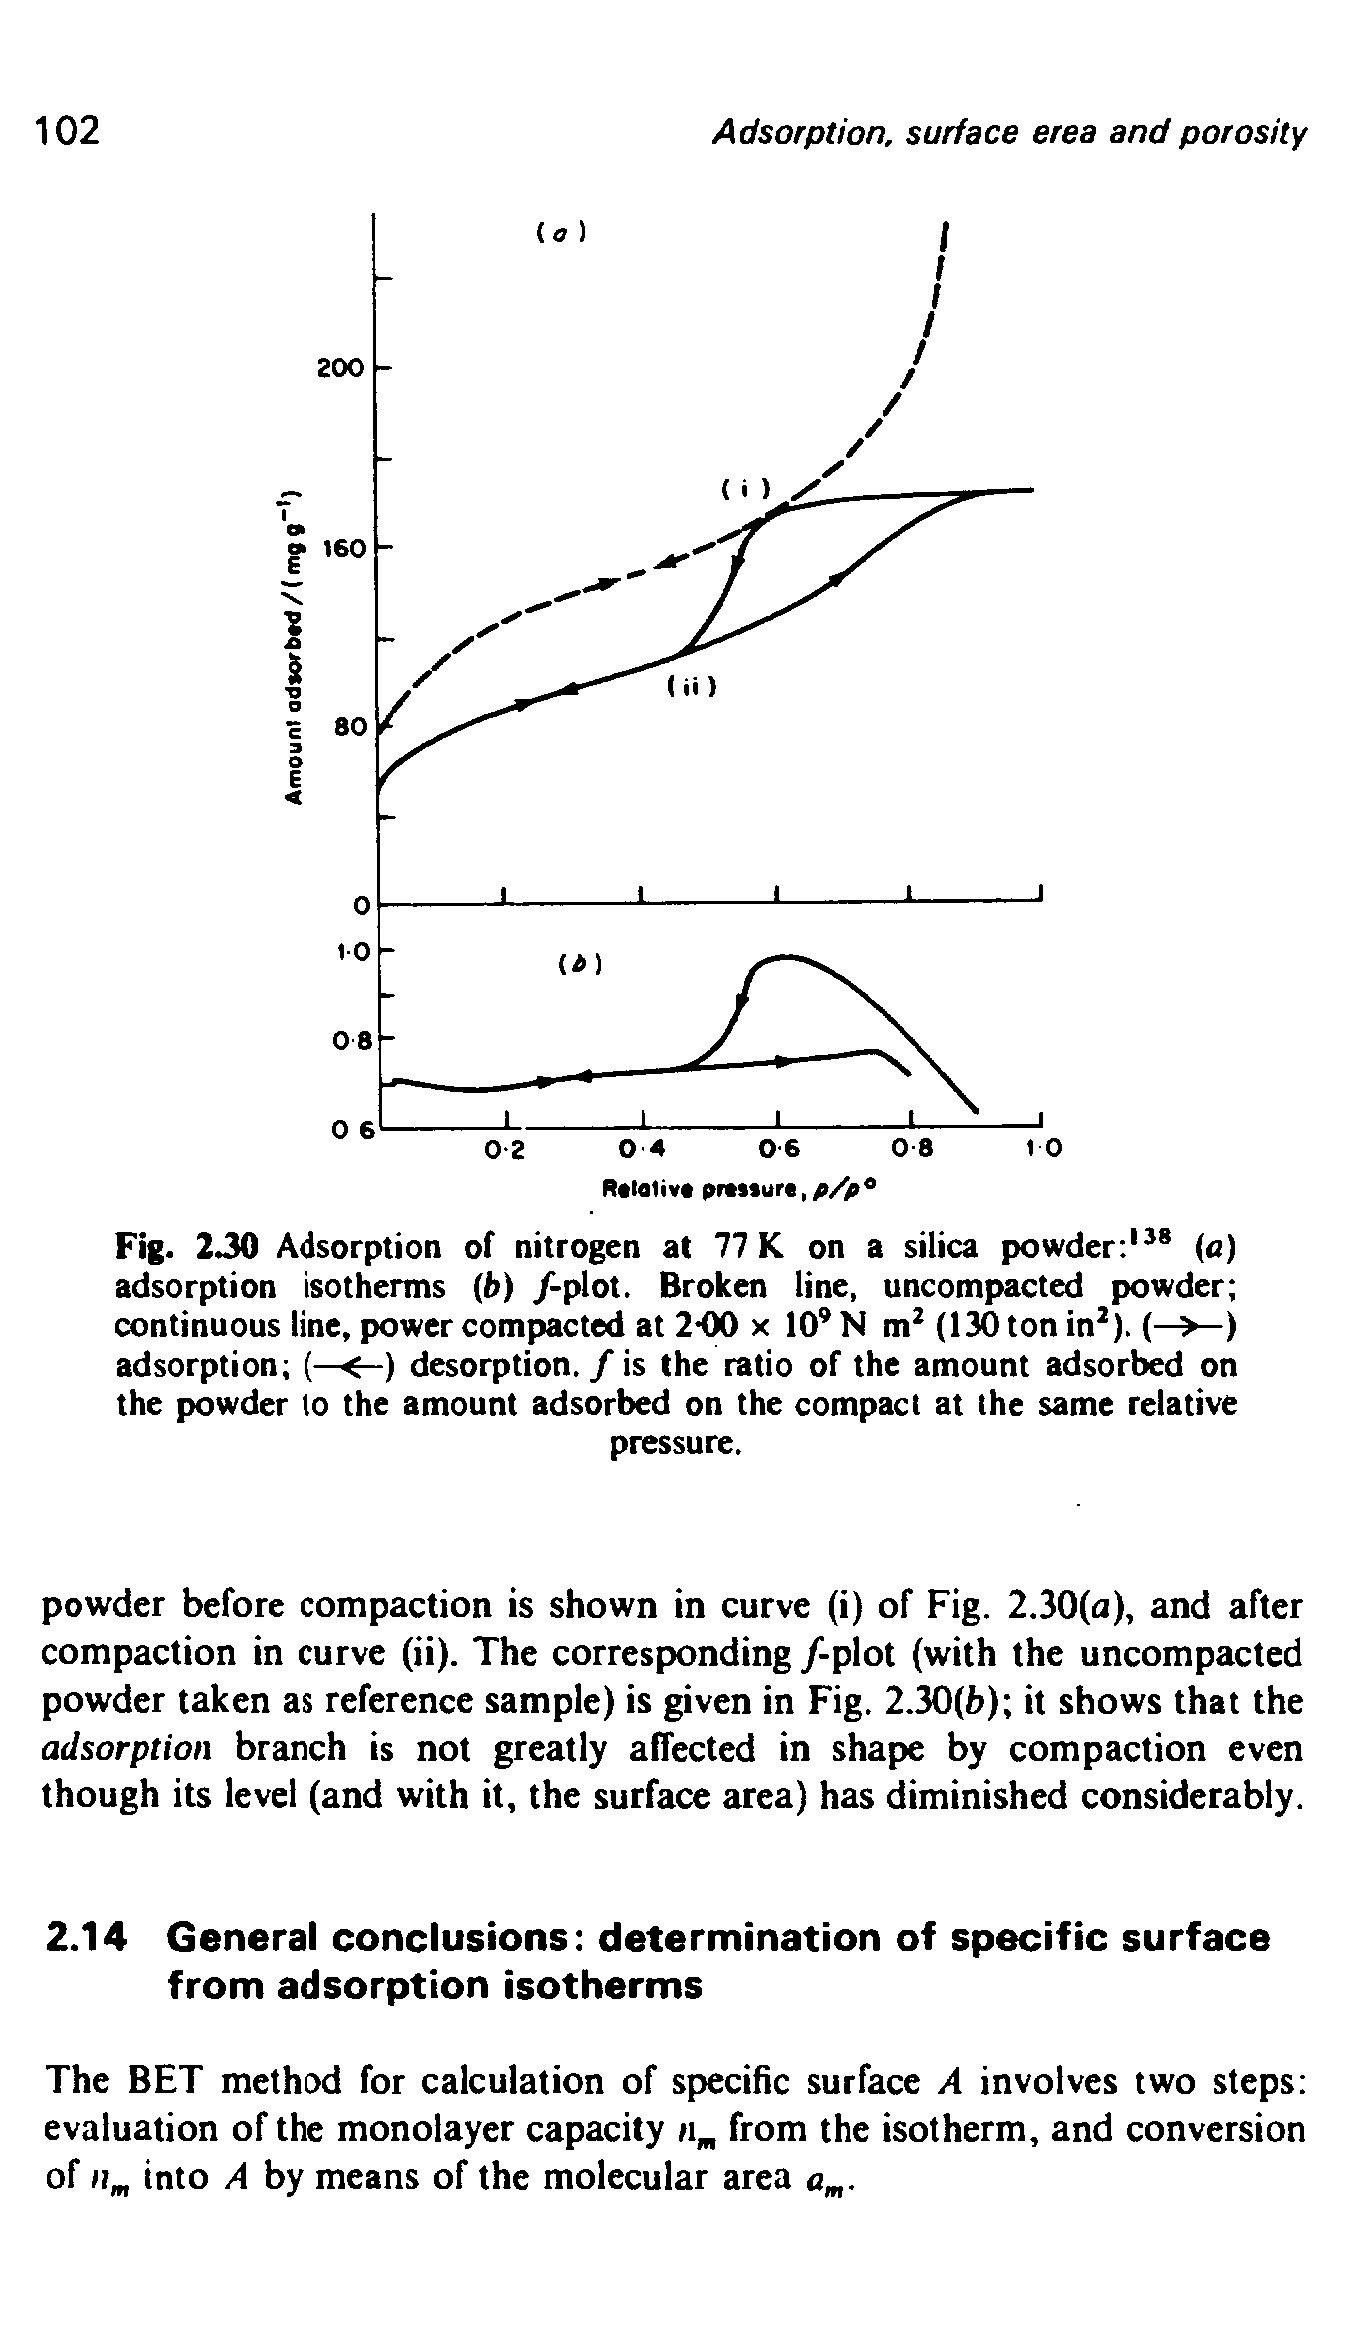 "Fig. 230 Adsorption of nitrogen at 77 K on a <a href=""/info/silica_powders"">silica powder</a> a) <a href=""/info/adsorption_isotherm"">adsorption isotherms</a> b) /-plot. Broken line, uncompacted powder <a href=""/info/continuous_on_line"">continuous line</a>, <a href=""/info/power_compaction"">power compacted</a> at 2-00 x 10 N m (130 ton in ). (—>—) adsorption (—<-) desorption. / is the ratio of the <a href=""/info/adsorbed_amounts"">amount adsorbed</a> on the powder to the <a href=""/info/adsorbed_amounts"">amount adsorbed</a> on the compact at the same relative"